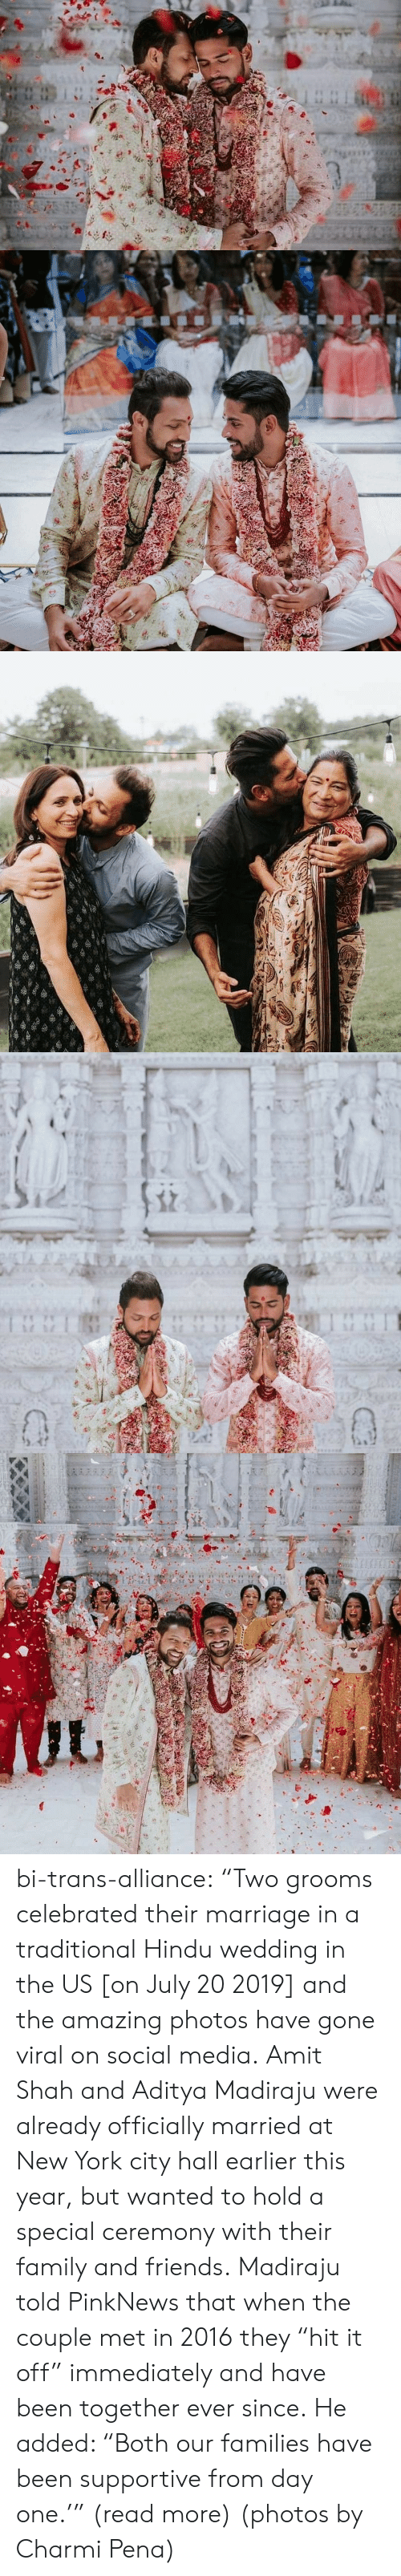 """Family, Friends, and Marriage: TA A  AAAA  1 1 bi-trans-alliance:   """"Two grooms celebrated their marriage in a traditional Hindu wedding in the US [on July 20 2019] and the amazing photos have gone viral on social media.   Amit Shah and Aditya Madiraju were already officially married at New York city hall earlier this year, but wanted to hold a special ceremony with their family and friends. Madiraju told PinkNews that when the couple met in 2016 they """"hit it off"""" immediately and have been together ever since. He added: """"Both our families have been supportive from day one.'"""" (read more) (photos by Charmi Pena)"""